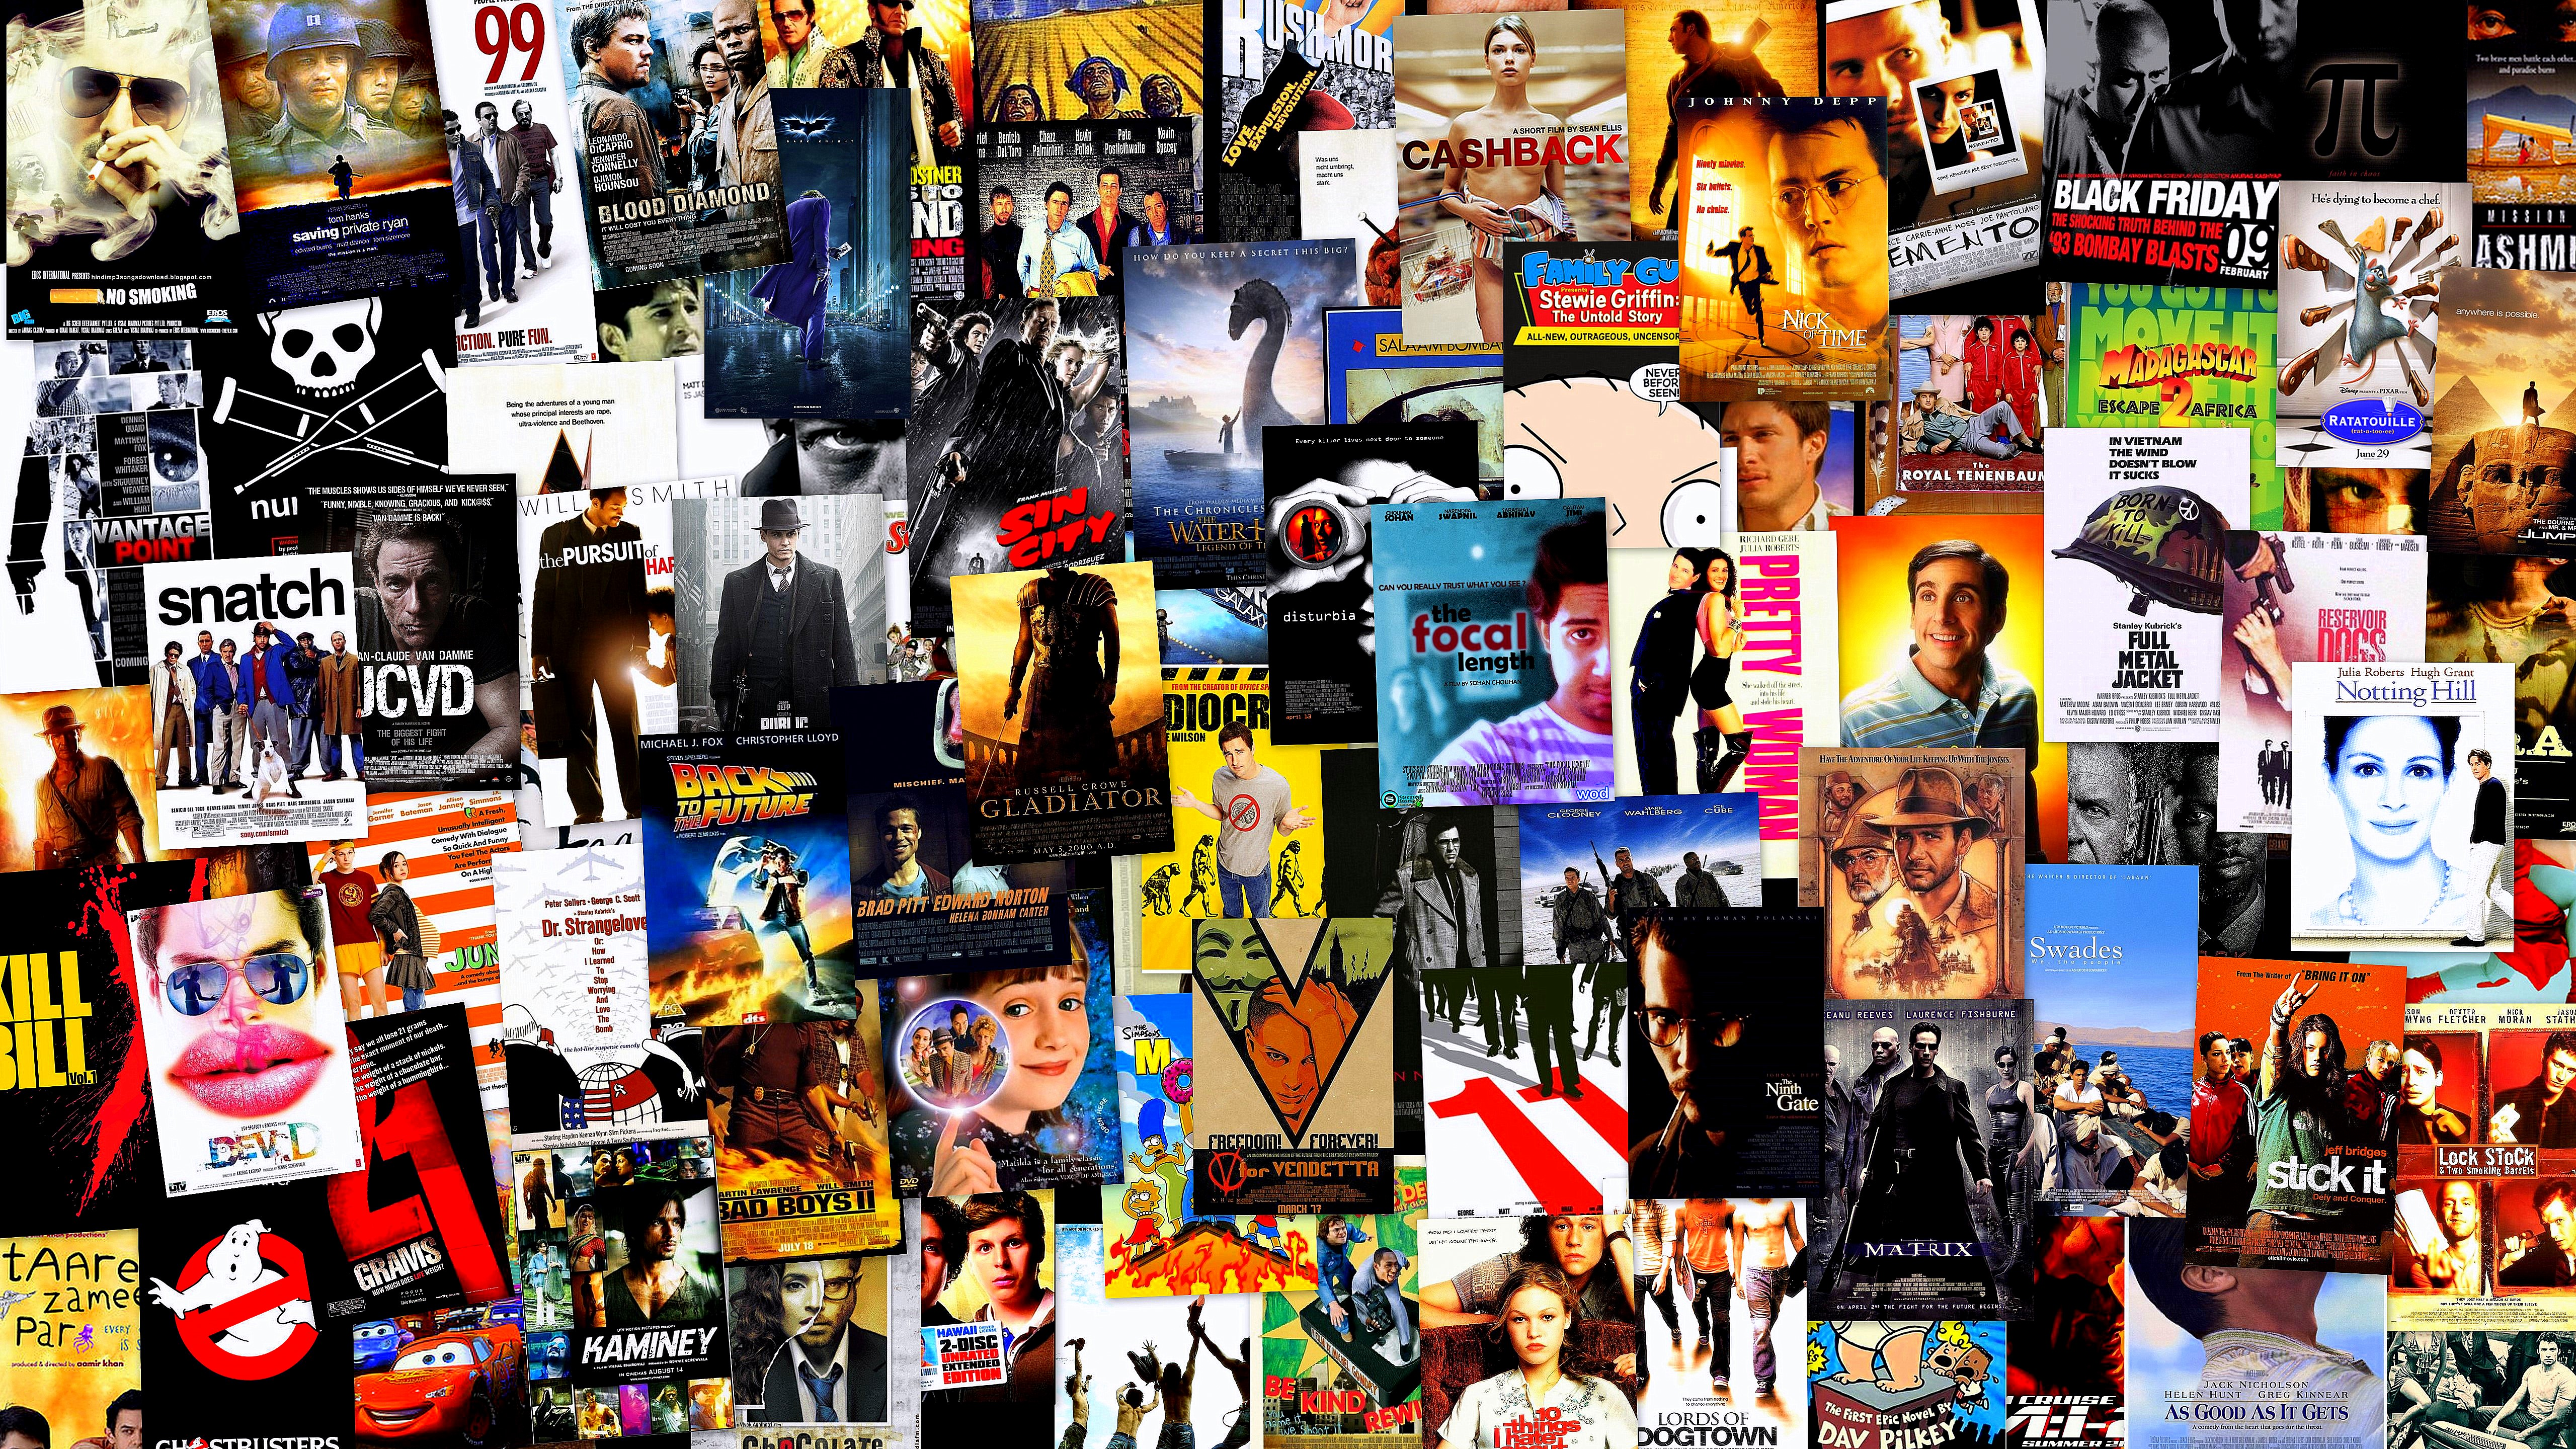 movie collage film films movies poster posters franchises favorite hd 1990s magazine fortitude wallpapers trivia tv hate favourites menace journals